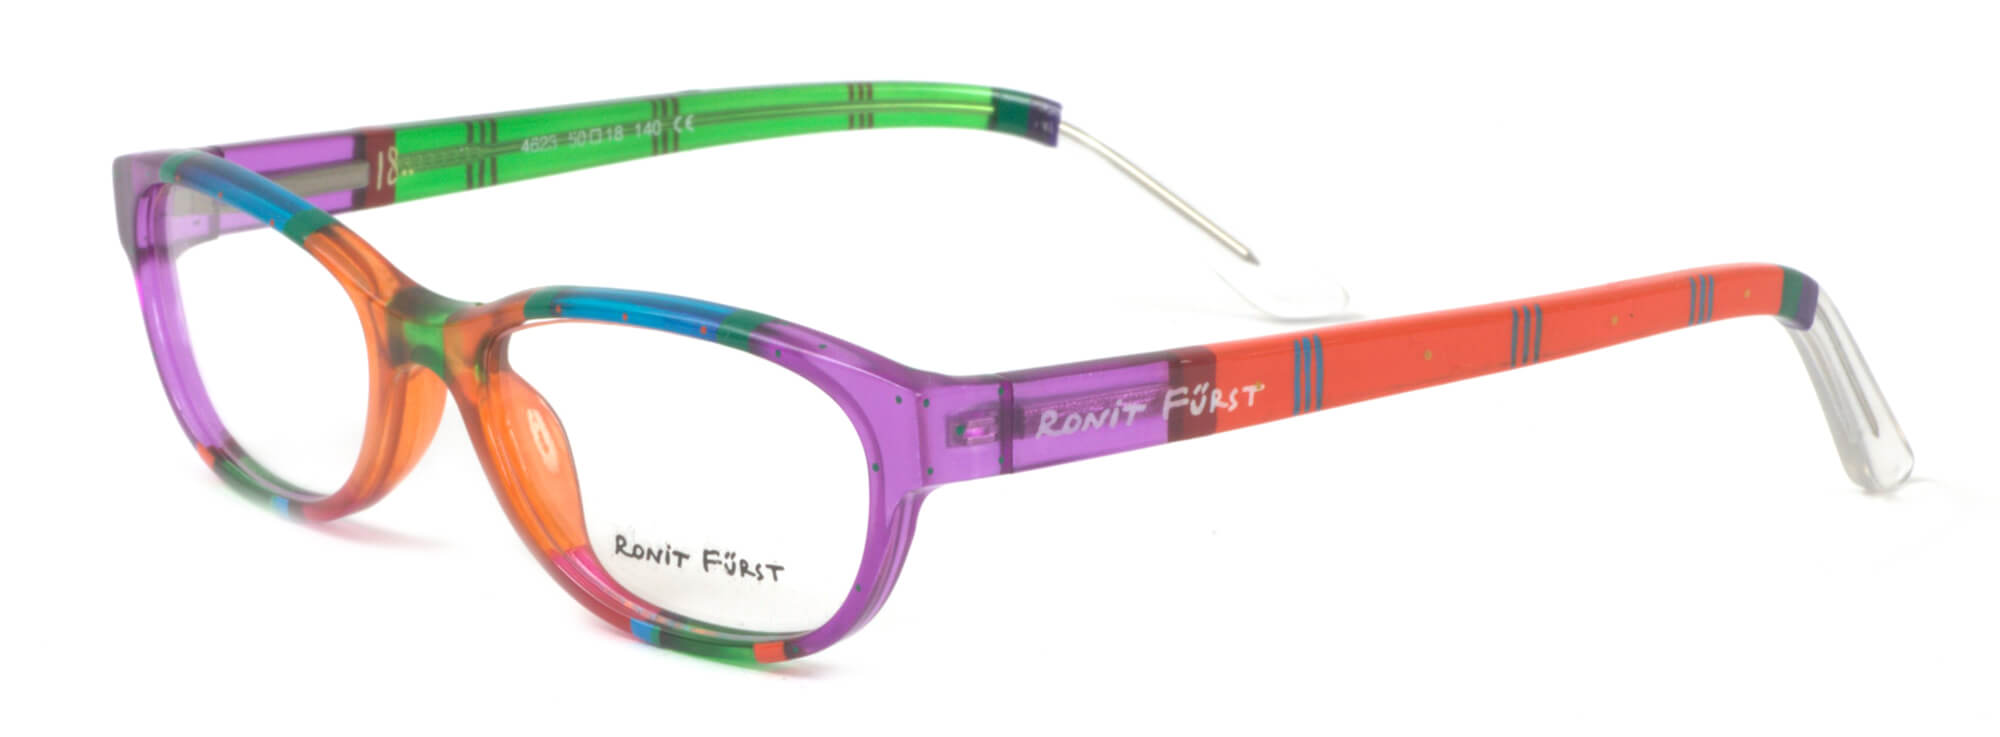 4c24d883eb4 Ronit Furst frames are all individually hand-painted creating quirky  individual styles that capture the wearer s personality.